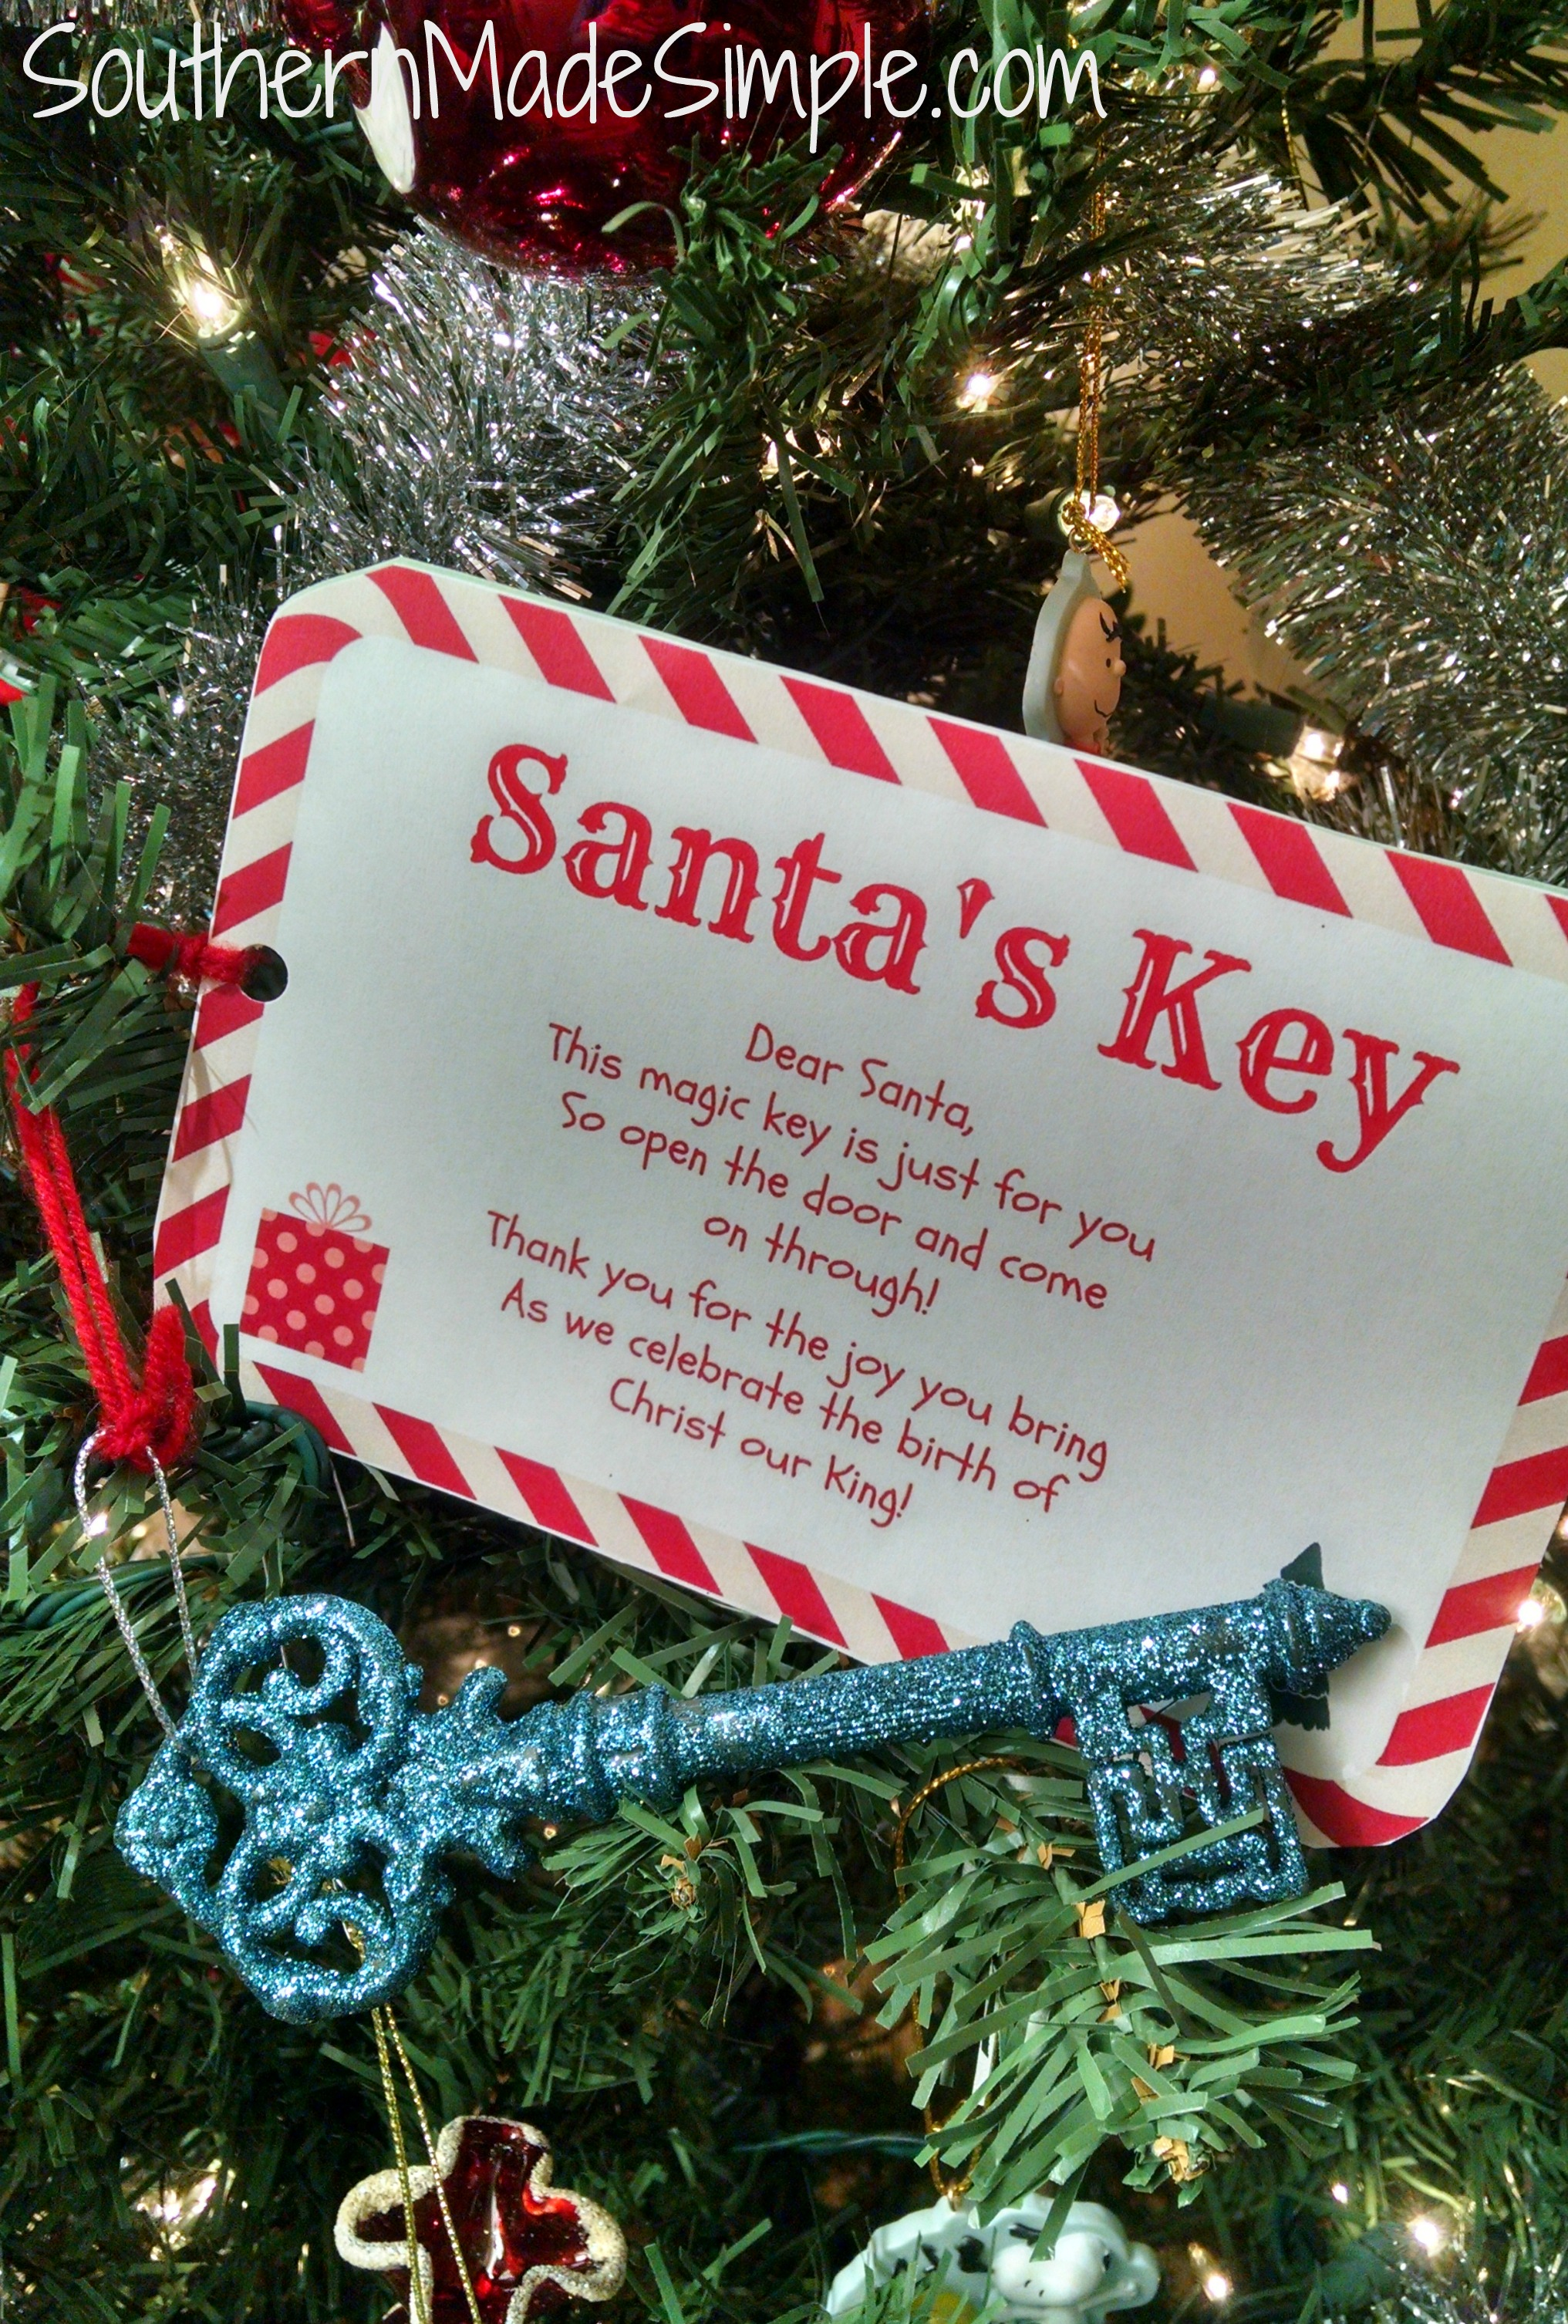 santa key free printable when there is no chimney for santa to go down - Rural King Christmas Decorations